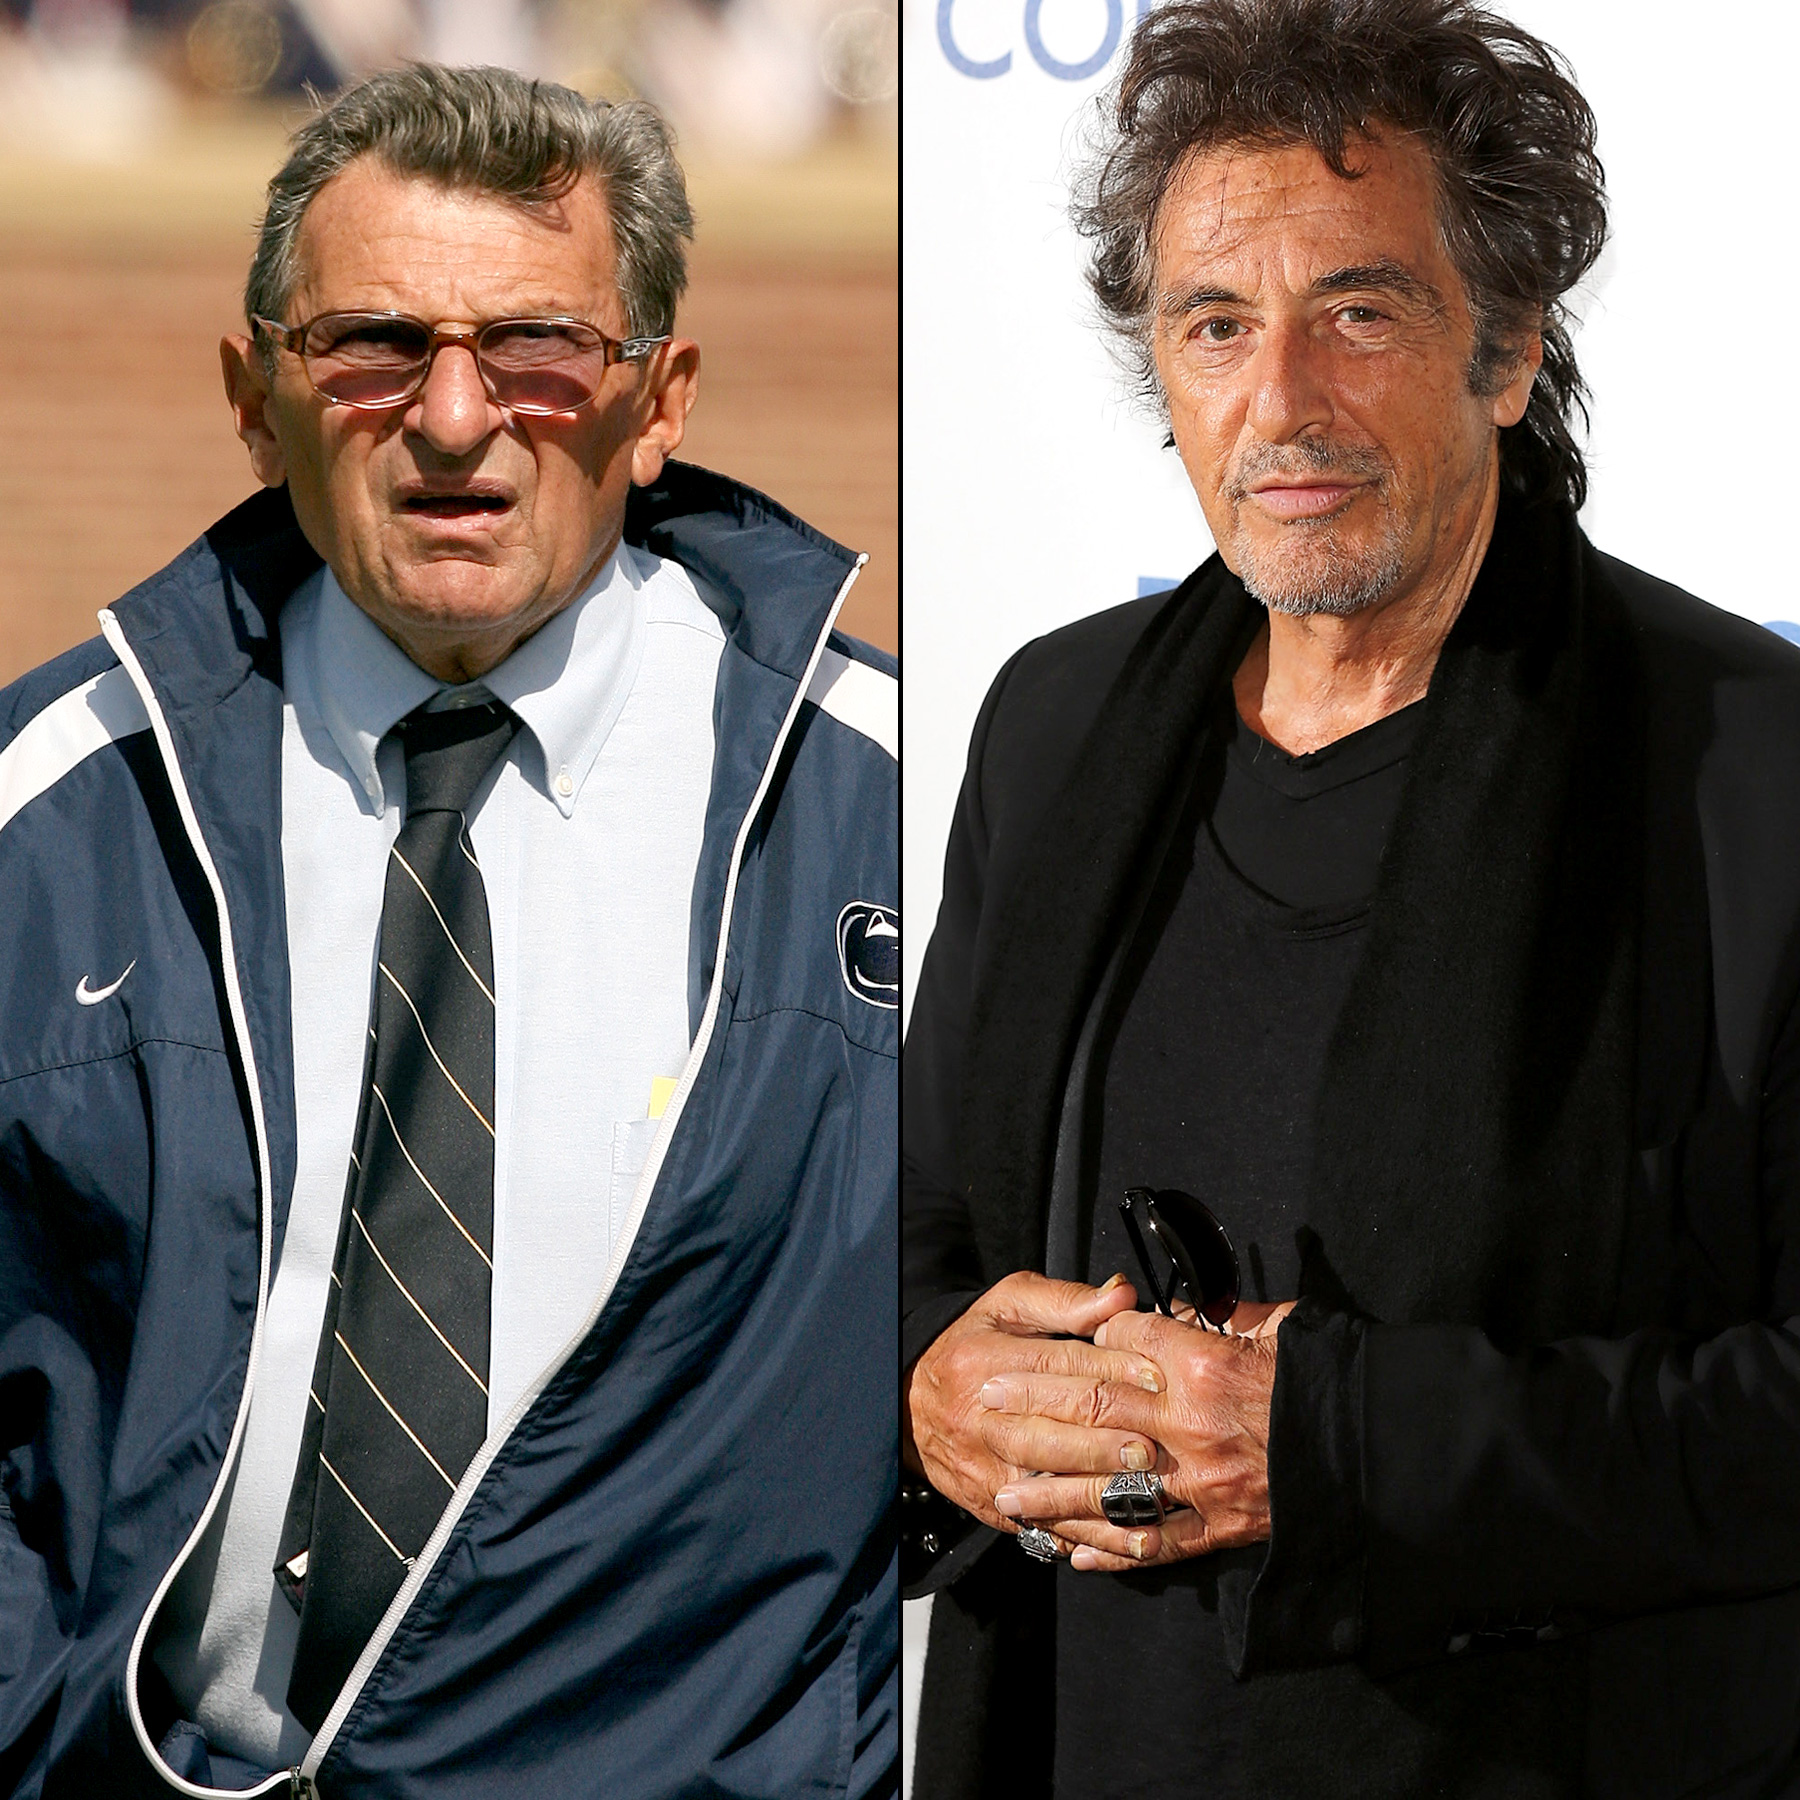 Joe Paterno and Al Pacino